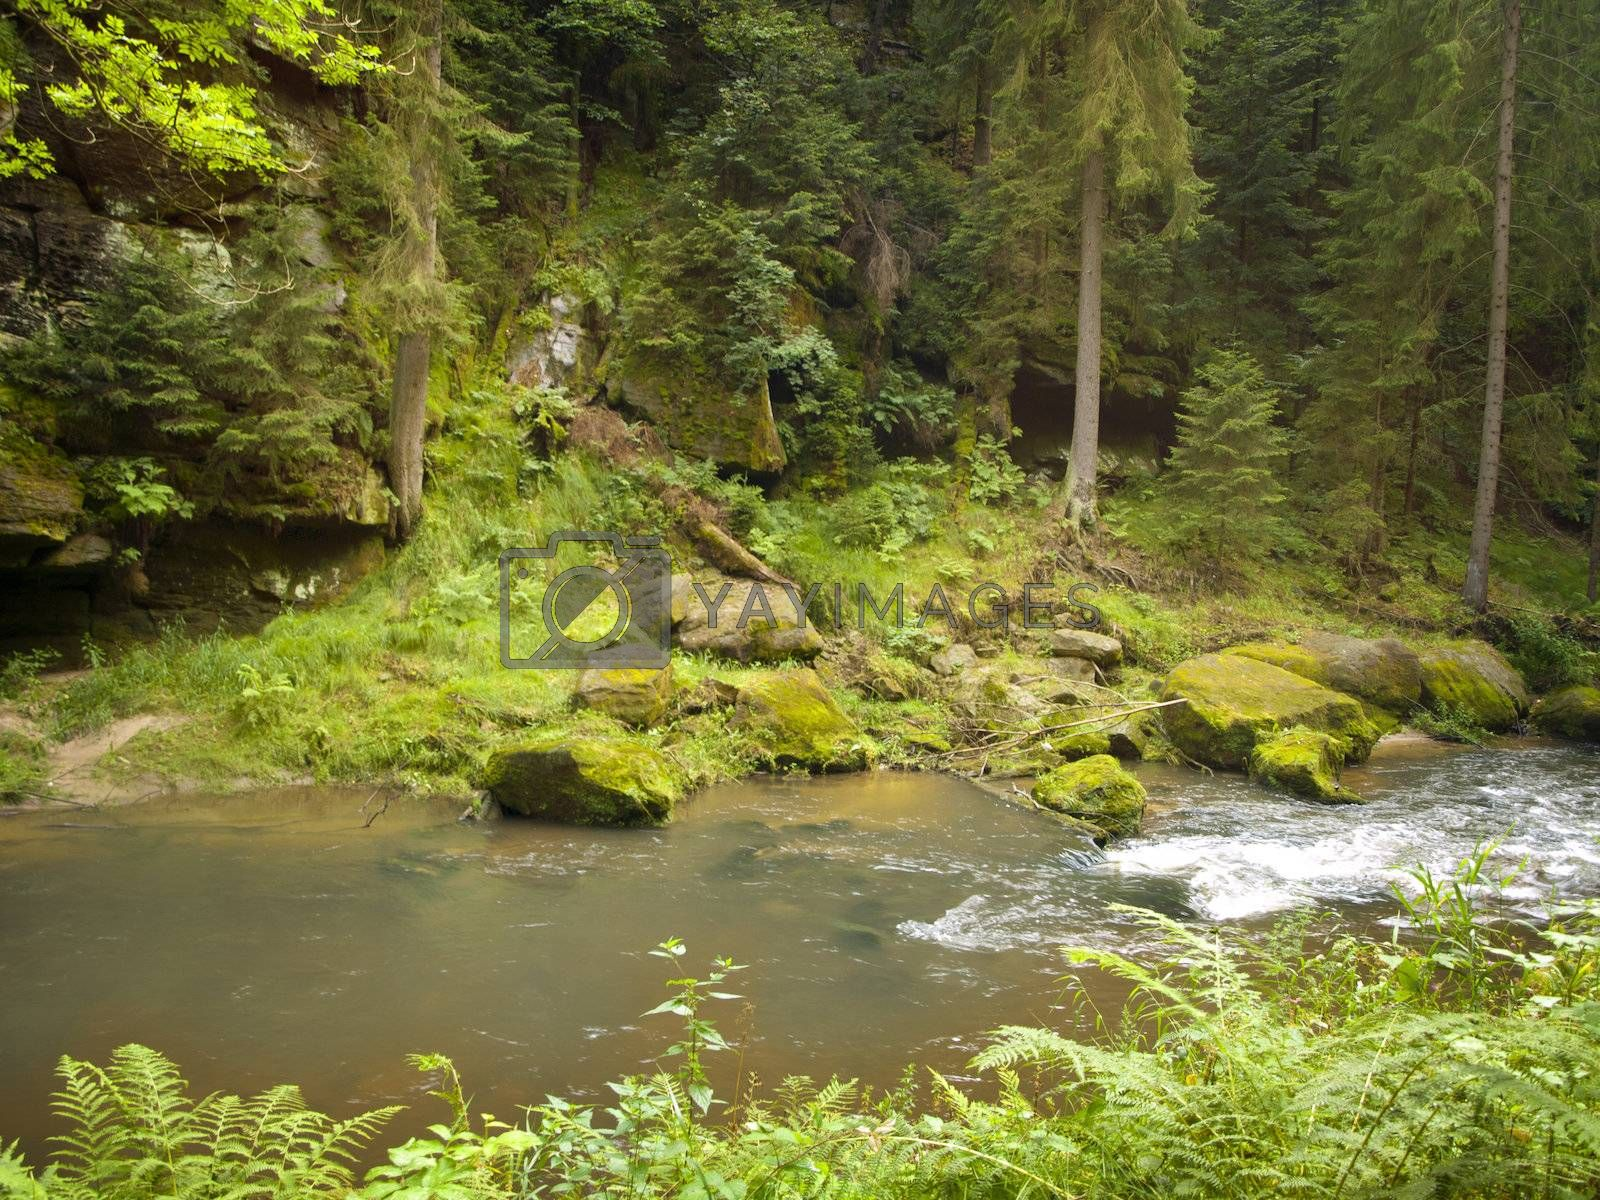 River in the wild green forest